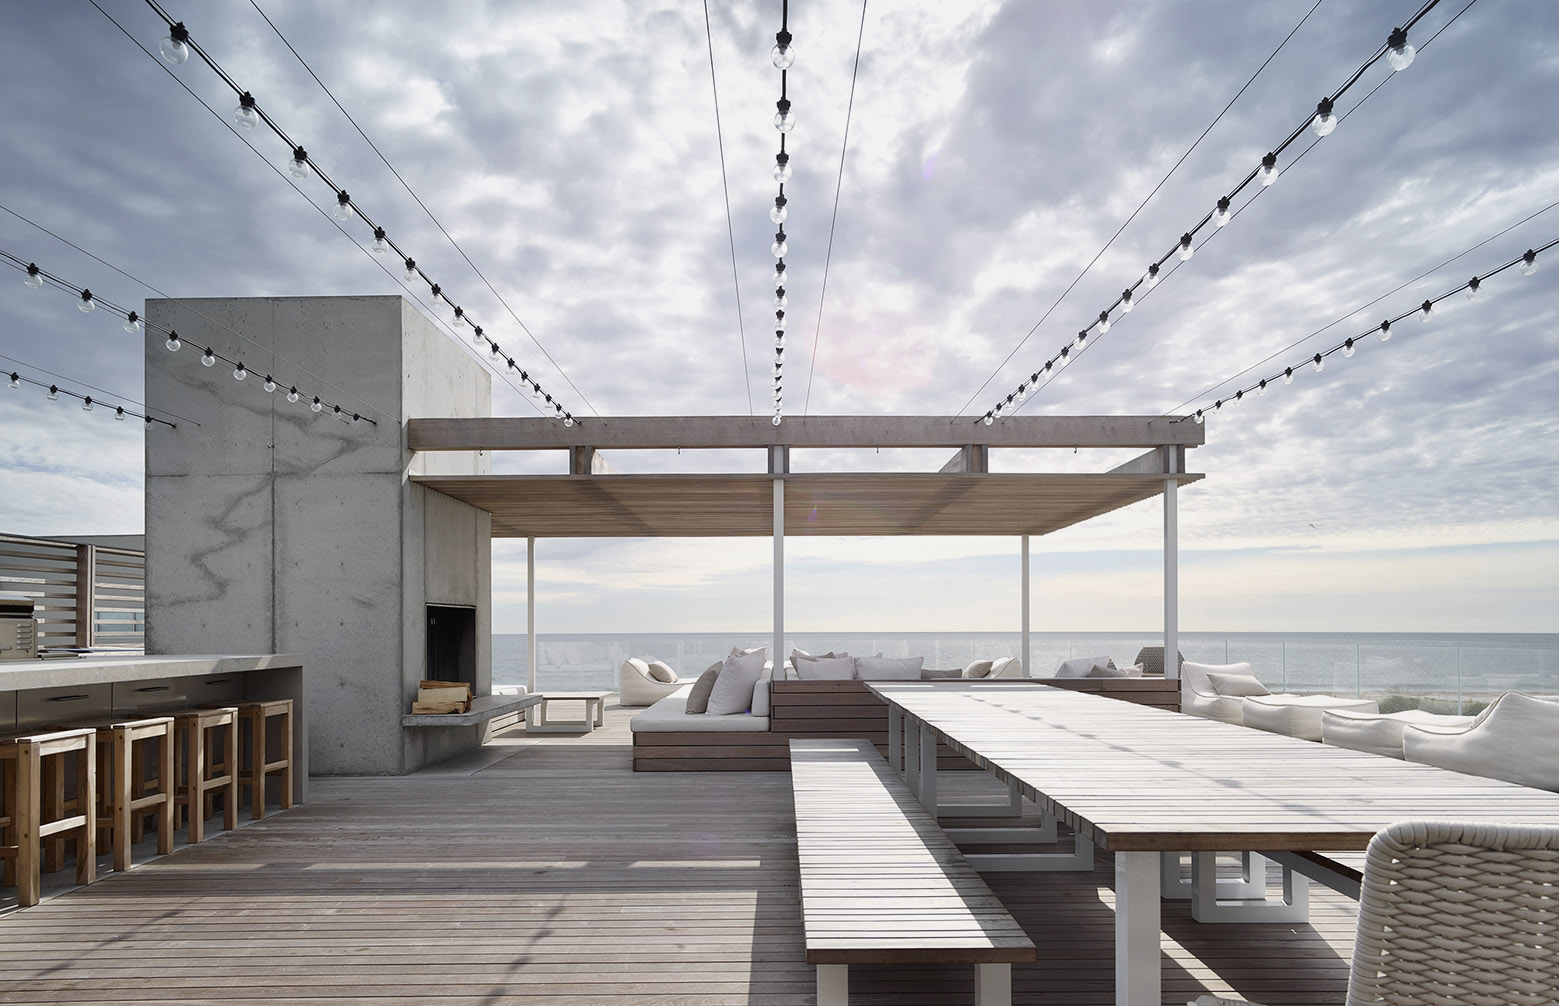 mm_Ocean Deck House design by Stelle Lomont Rouhani Architects_17